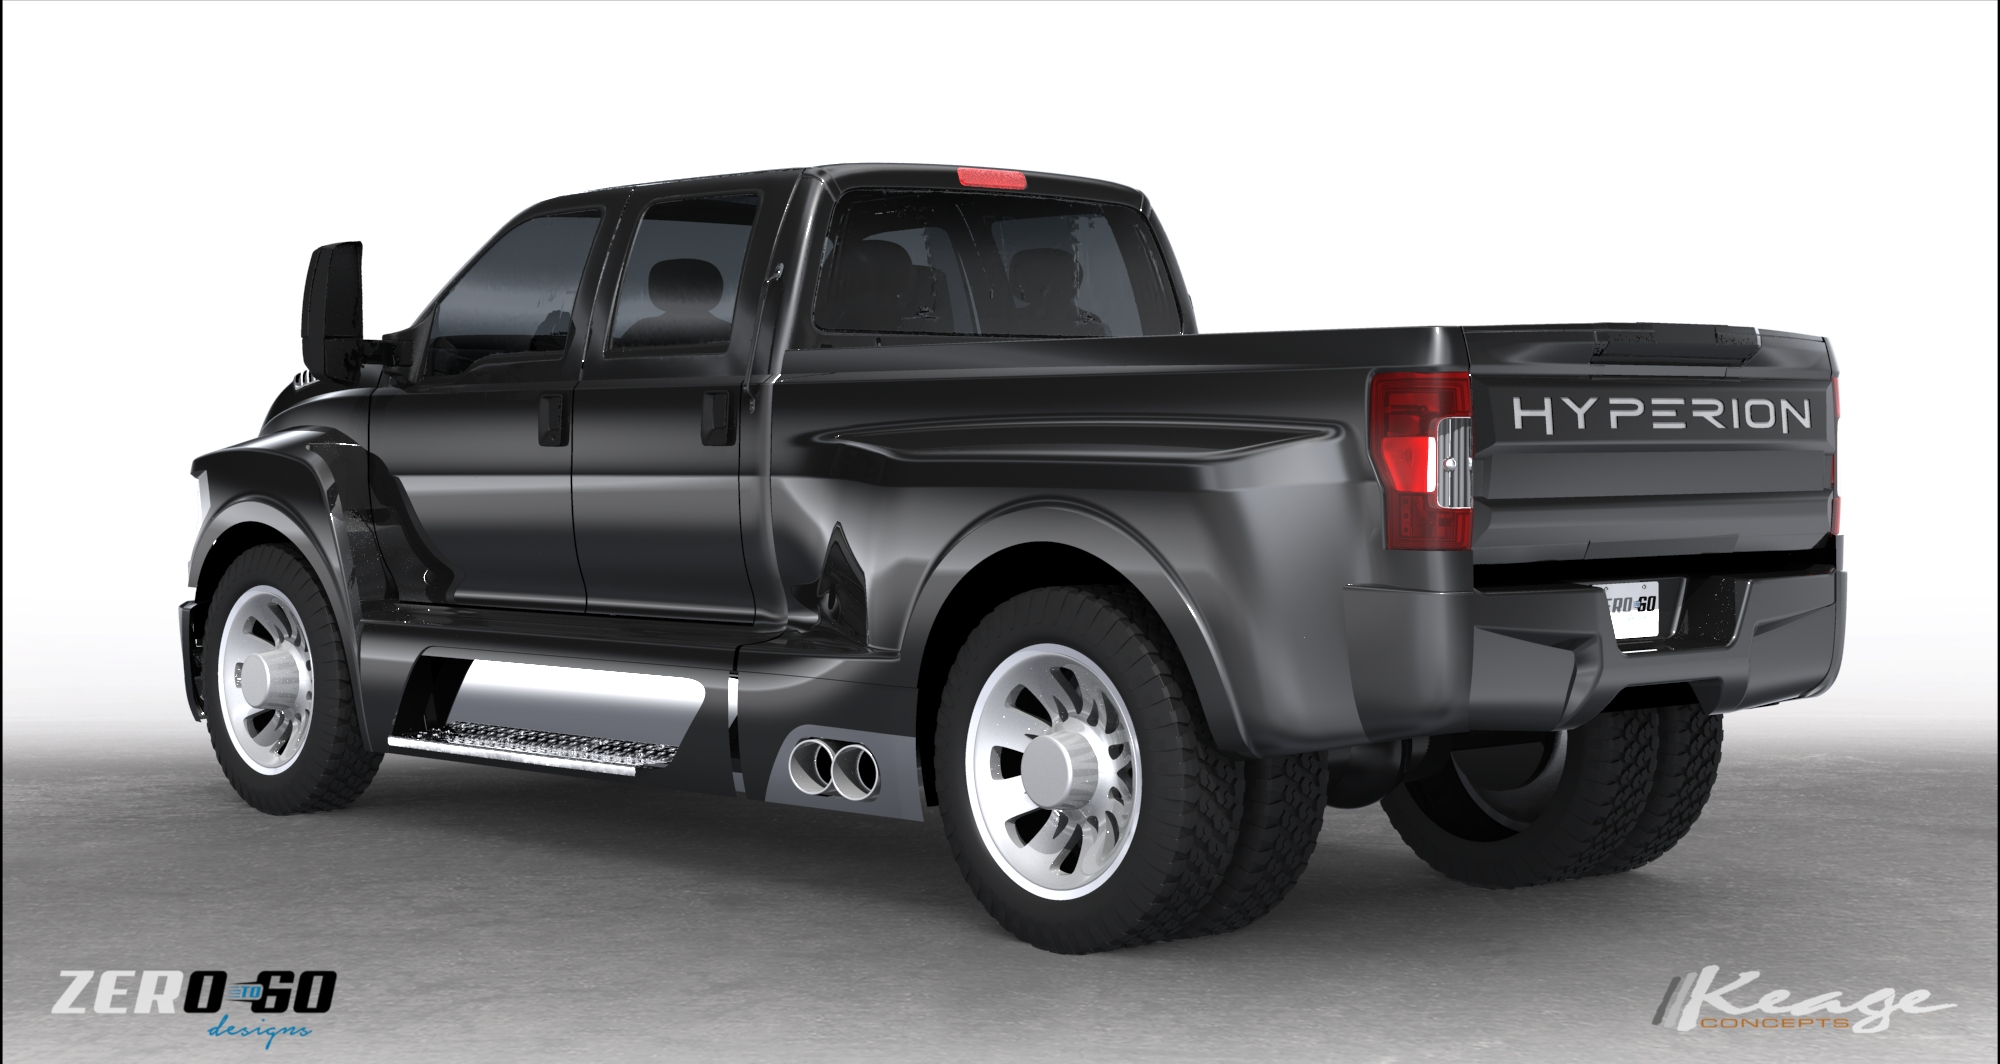 Hyperion F650 Keage Concepts Calgary Alberta Automotive Design